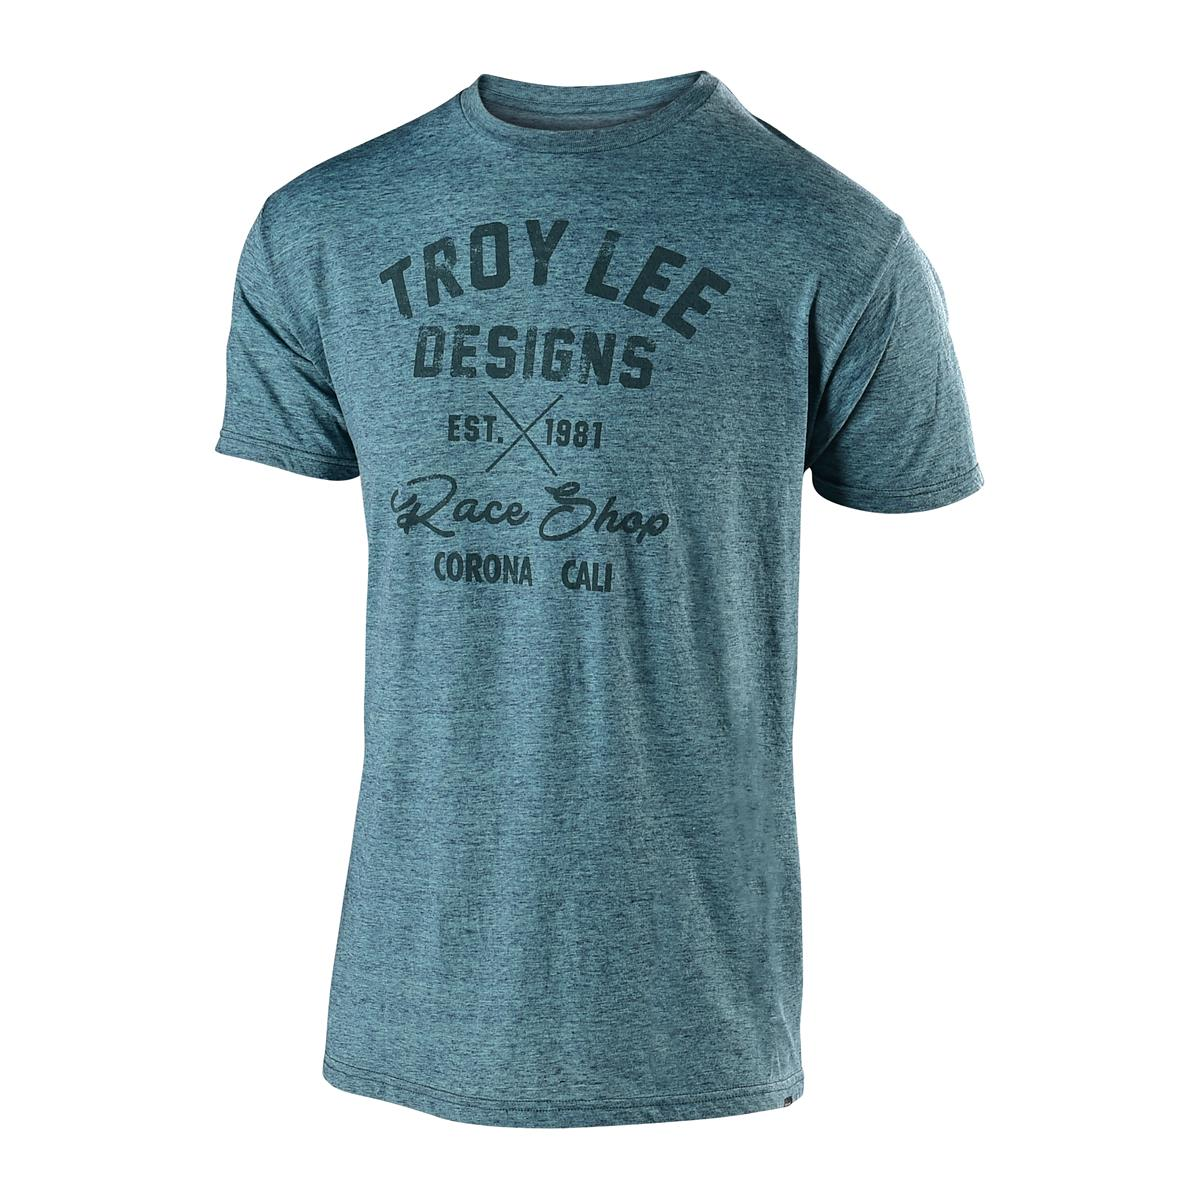 Troy Lee Designs T-Shirt Vintage Race Shop Lagoon Teal